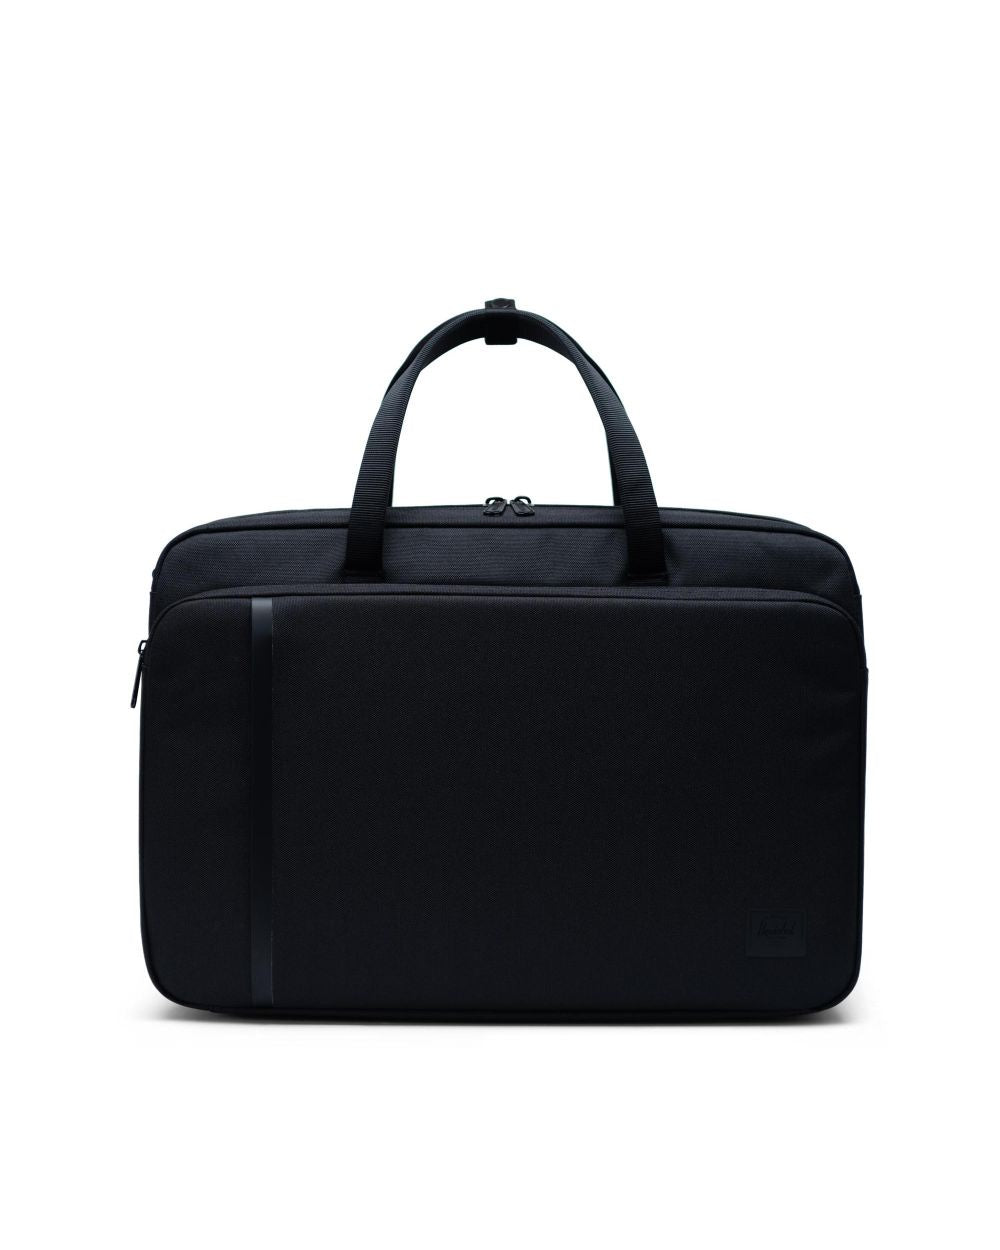 HERSCHEL - BOWEN TRAVEL DUFFLE IN BLACK